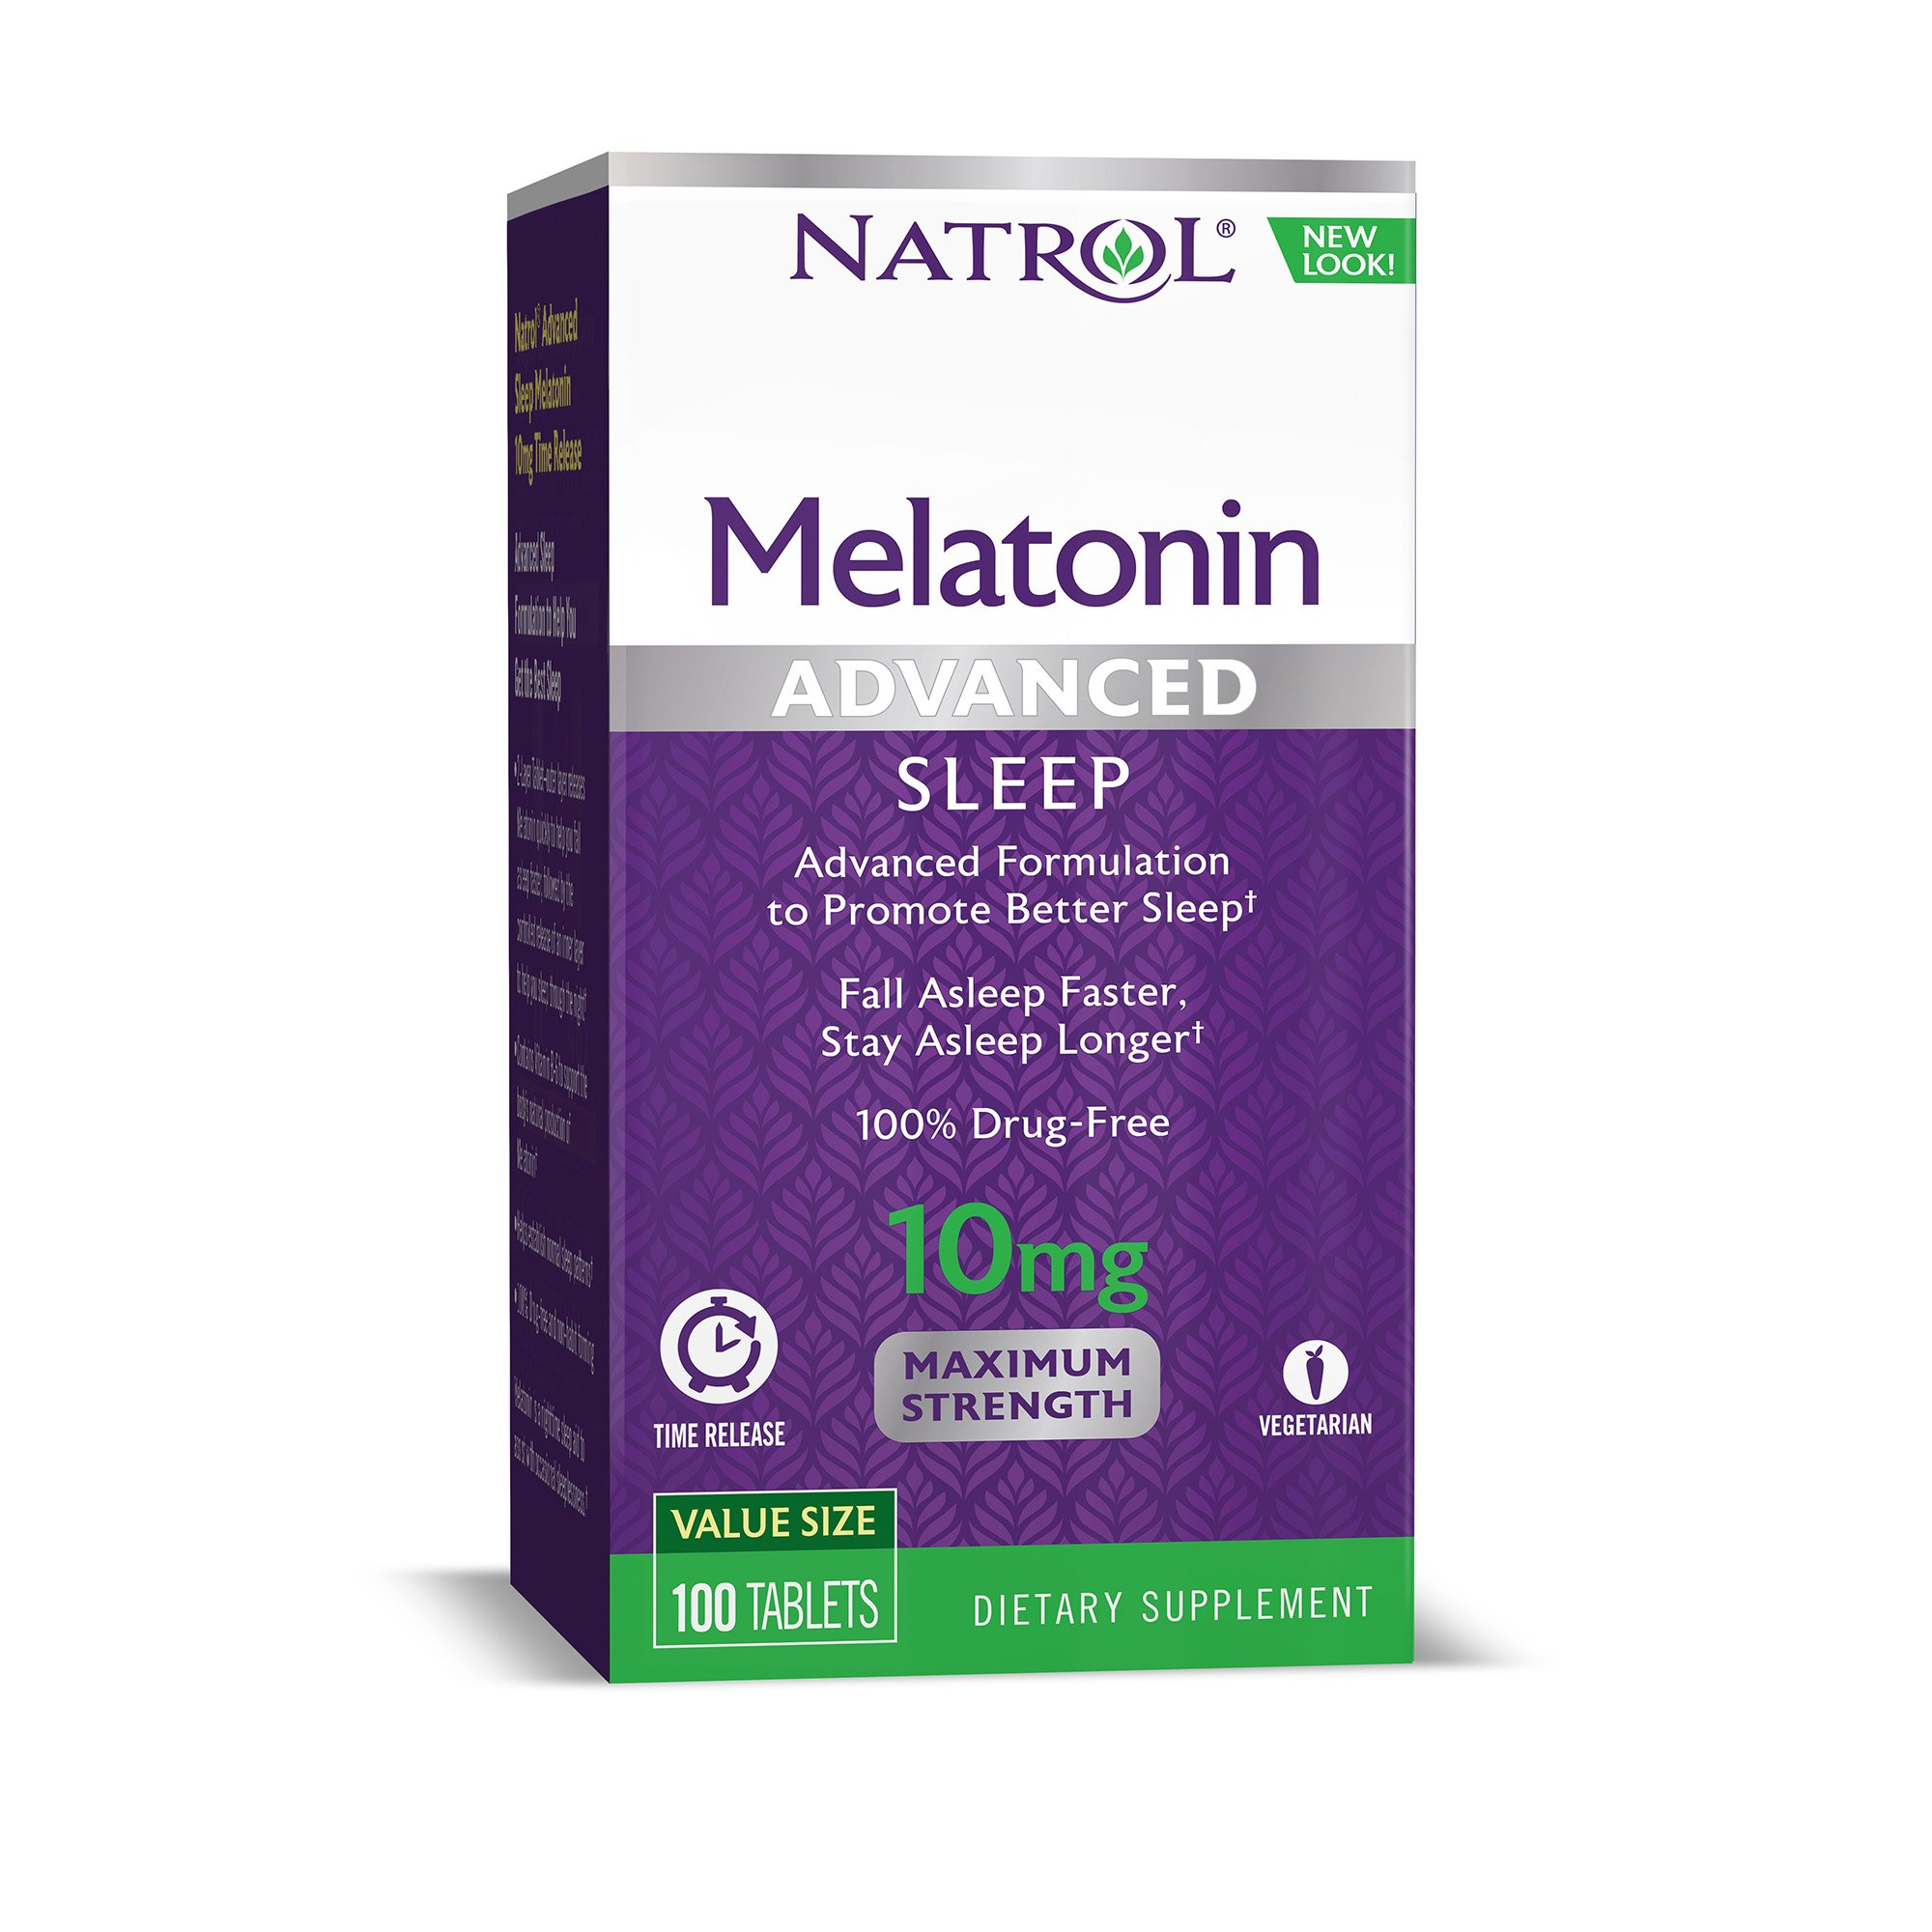 Natrol Advanced Sleep Melatonin 10mg Time Released, 100 Count